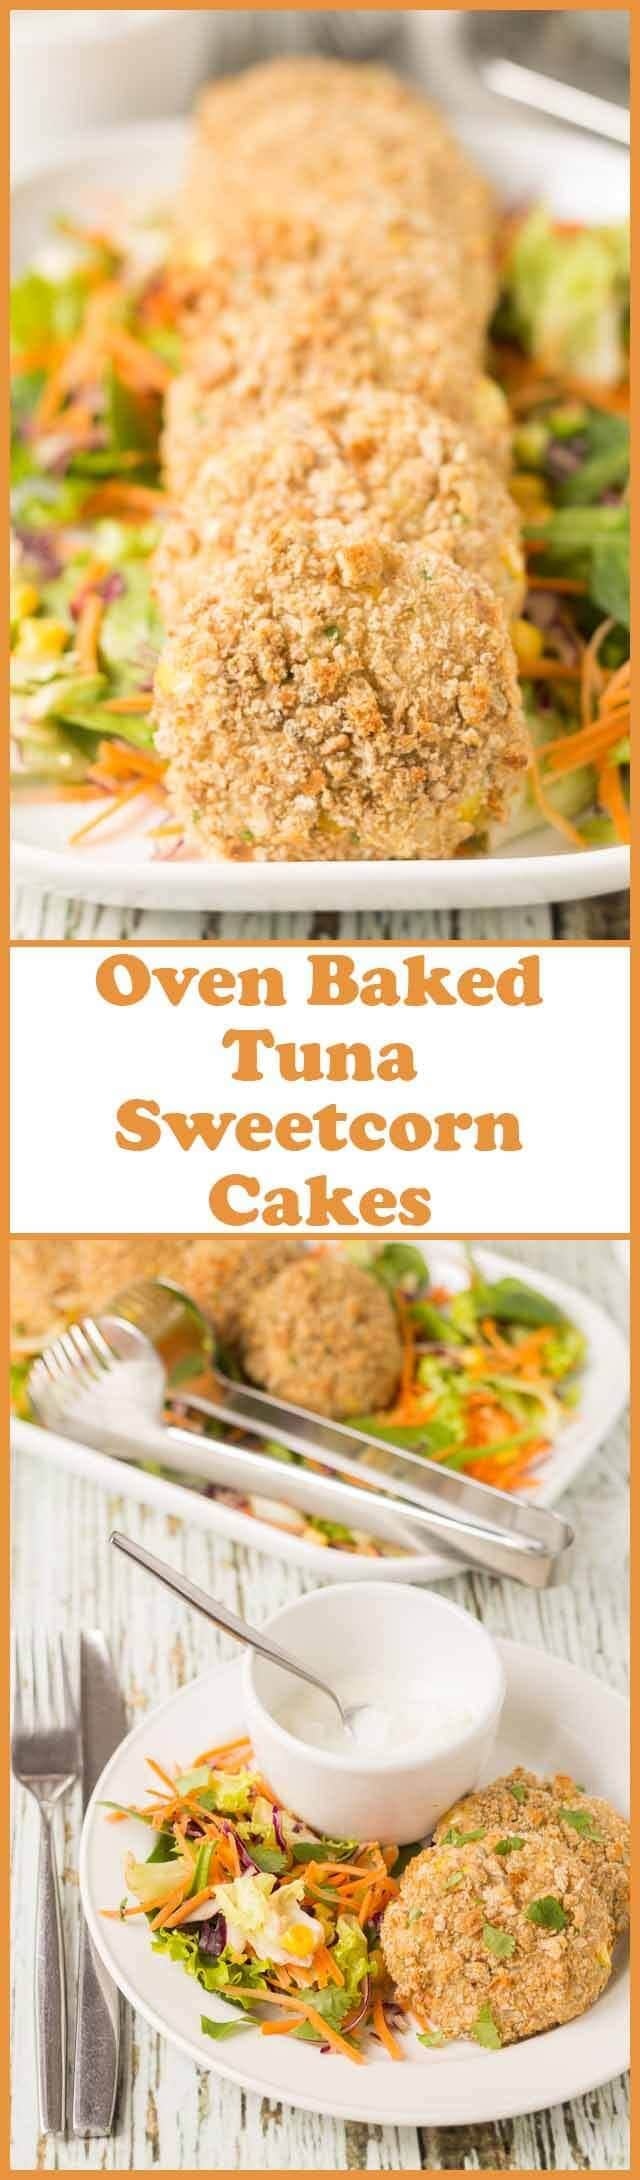 These oven baked tuna sweetcorn cakes are a greatway of using up leftover potatoes to create an amazingly simple and filling quick healthy meal. Being oven baked instead of fried these delicious healthy cakes are lower in calories and fat too!